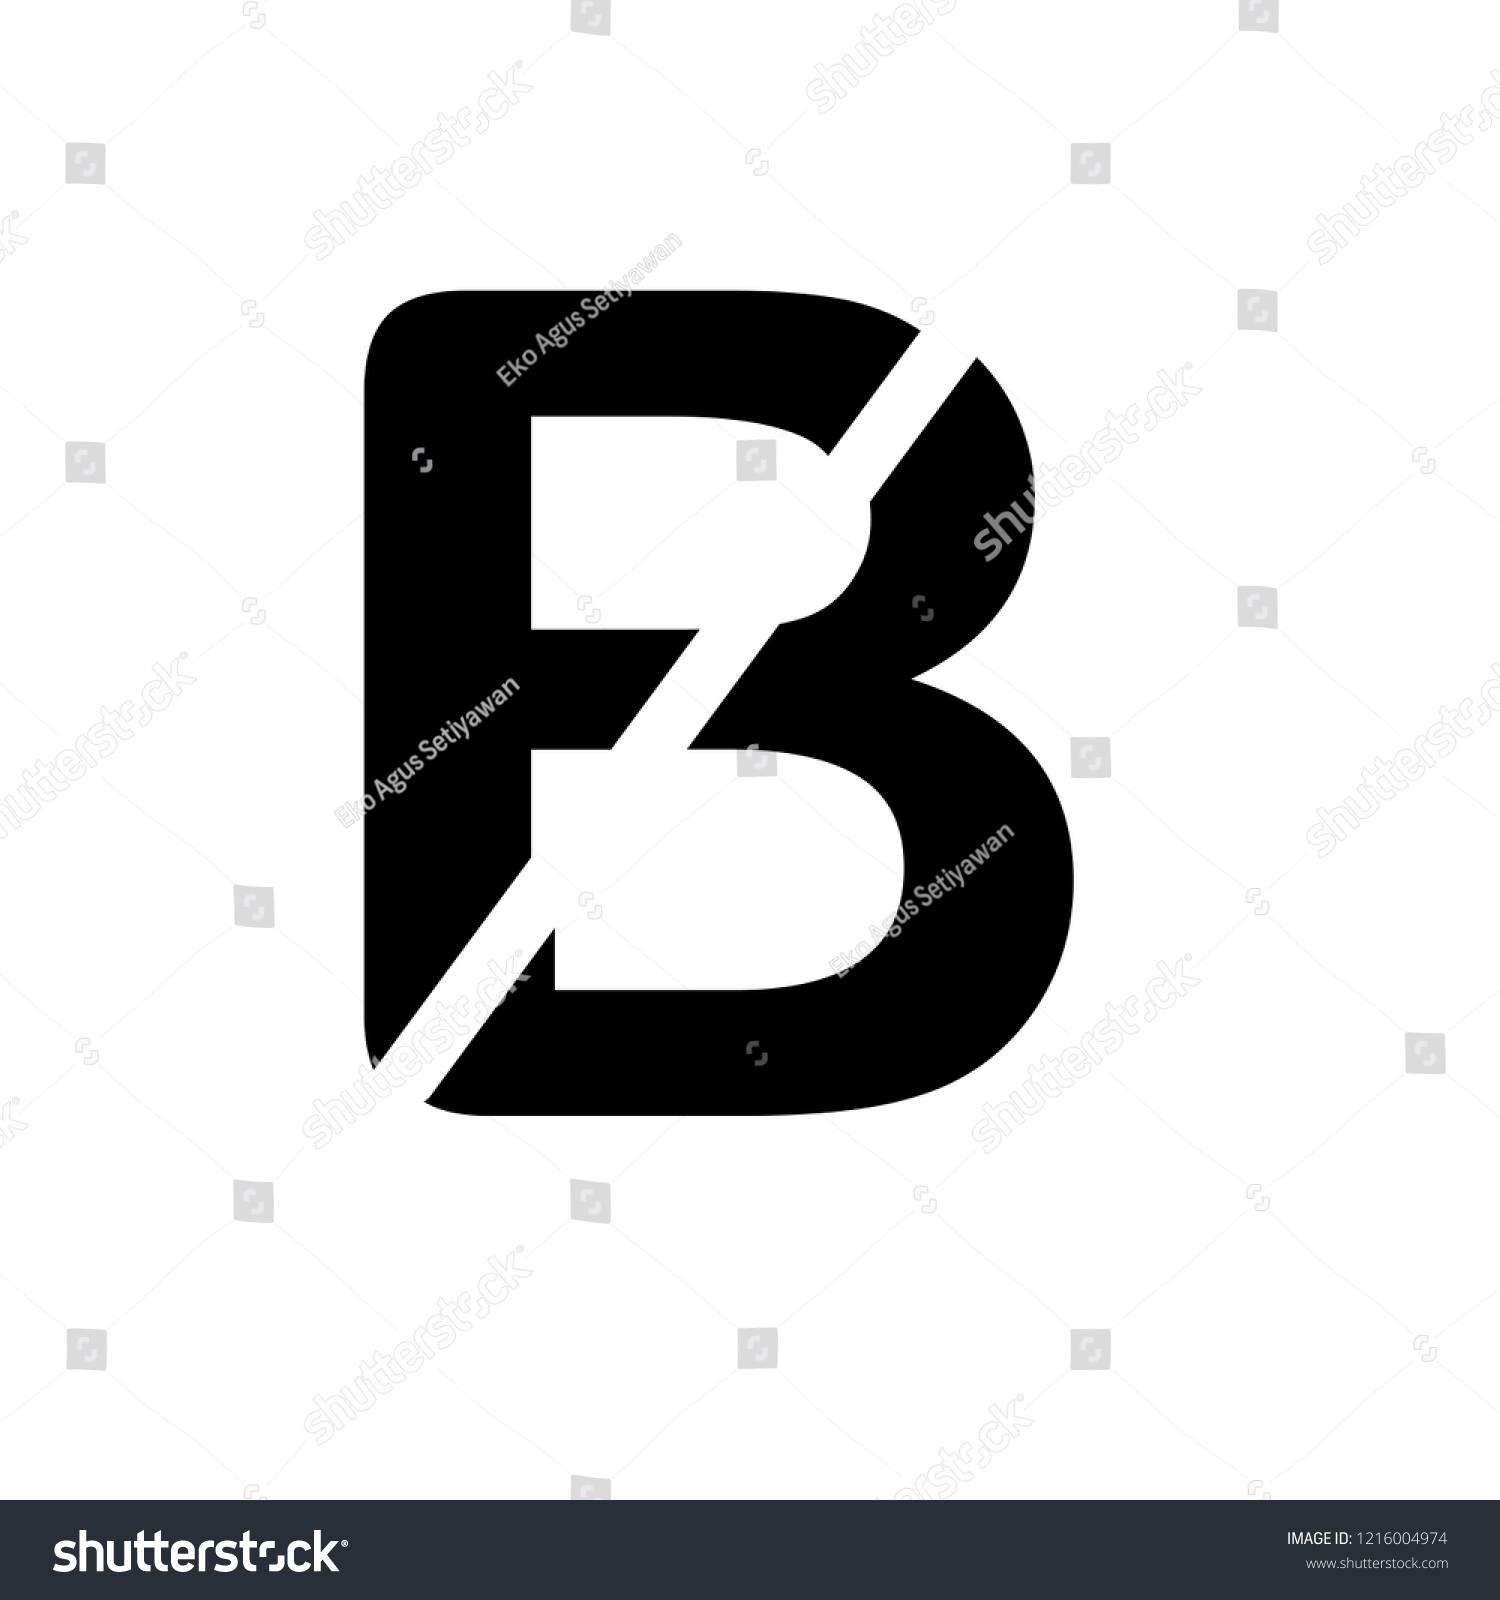 font slash logo vector stock vector royalty free 1216004974 shutterstock